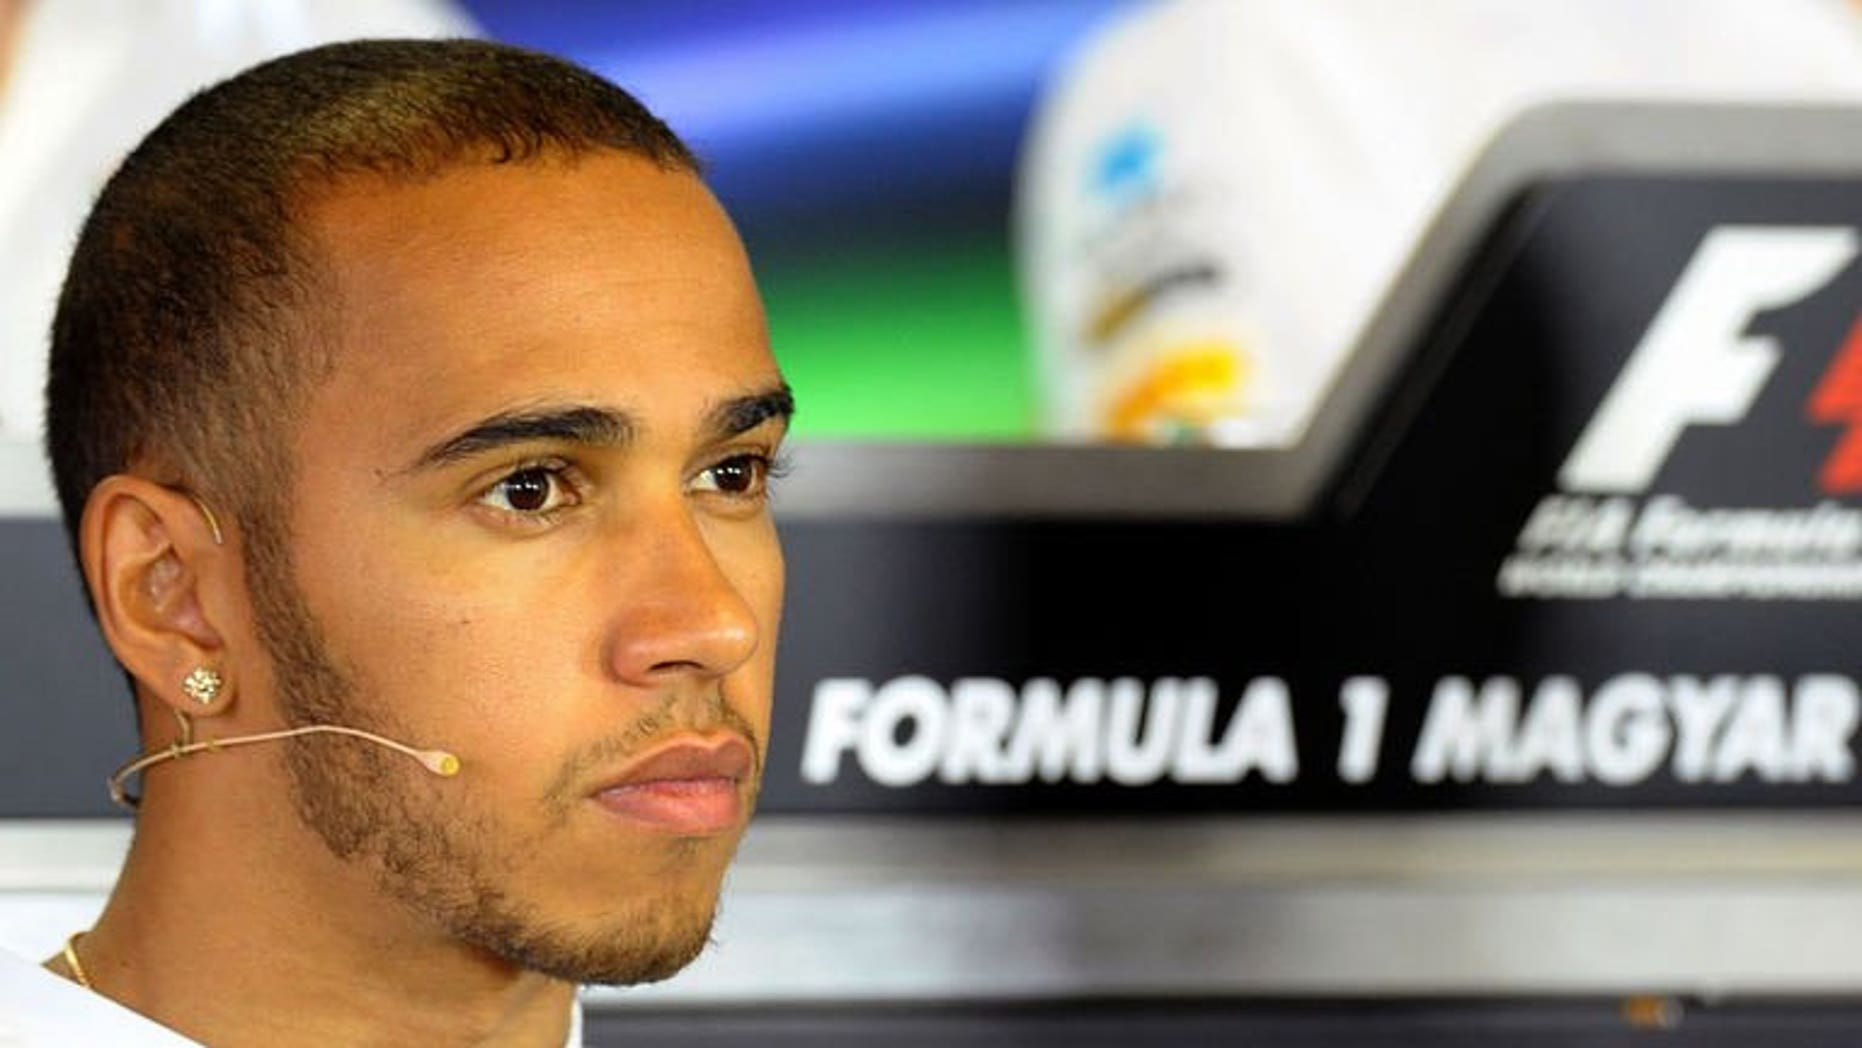 Mercedes' British driver Lewis Hamilton attends a press conference at the Hungaroring circuit in Budapest on July 25, 2013 on the eve of the first free practice session of the Hungarian Formula One Grand Prix.